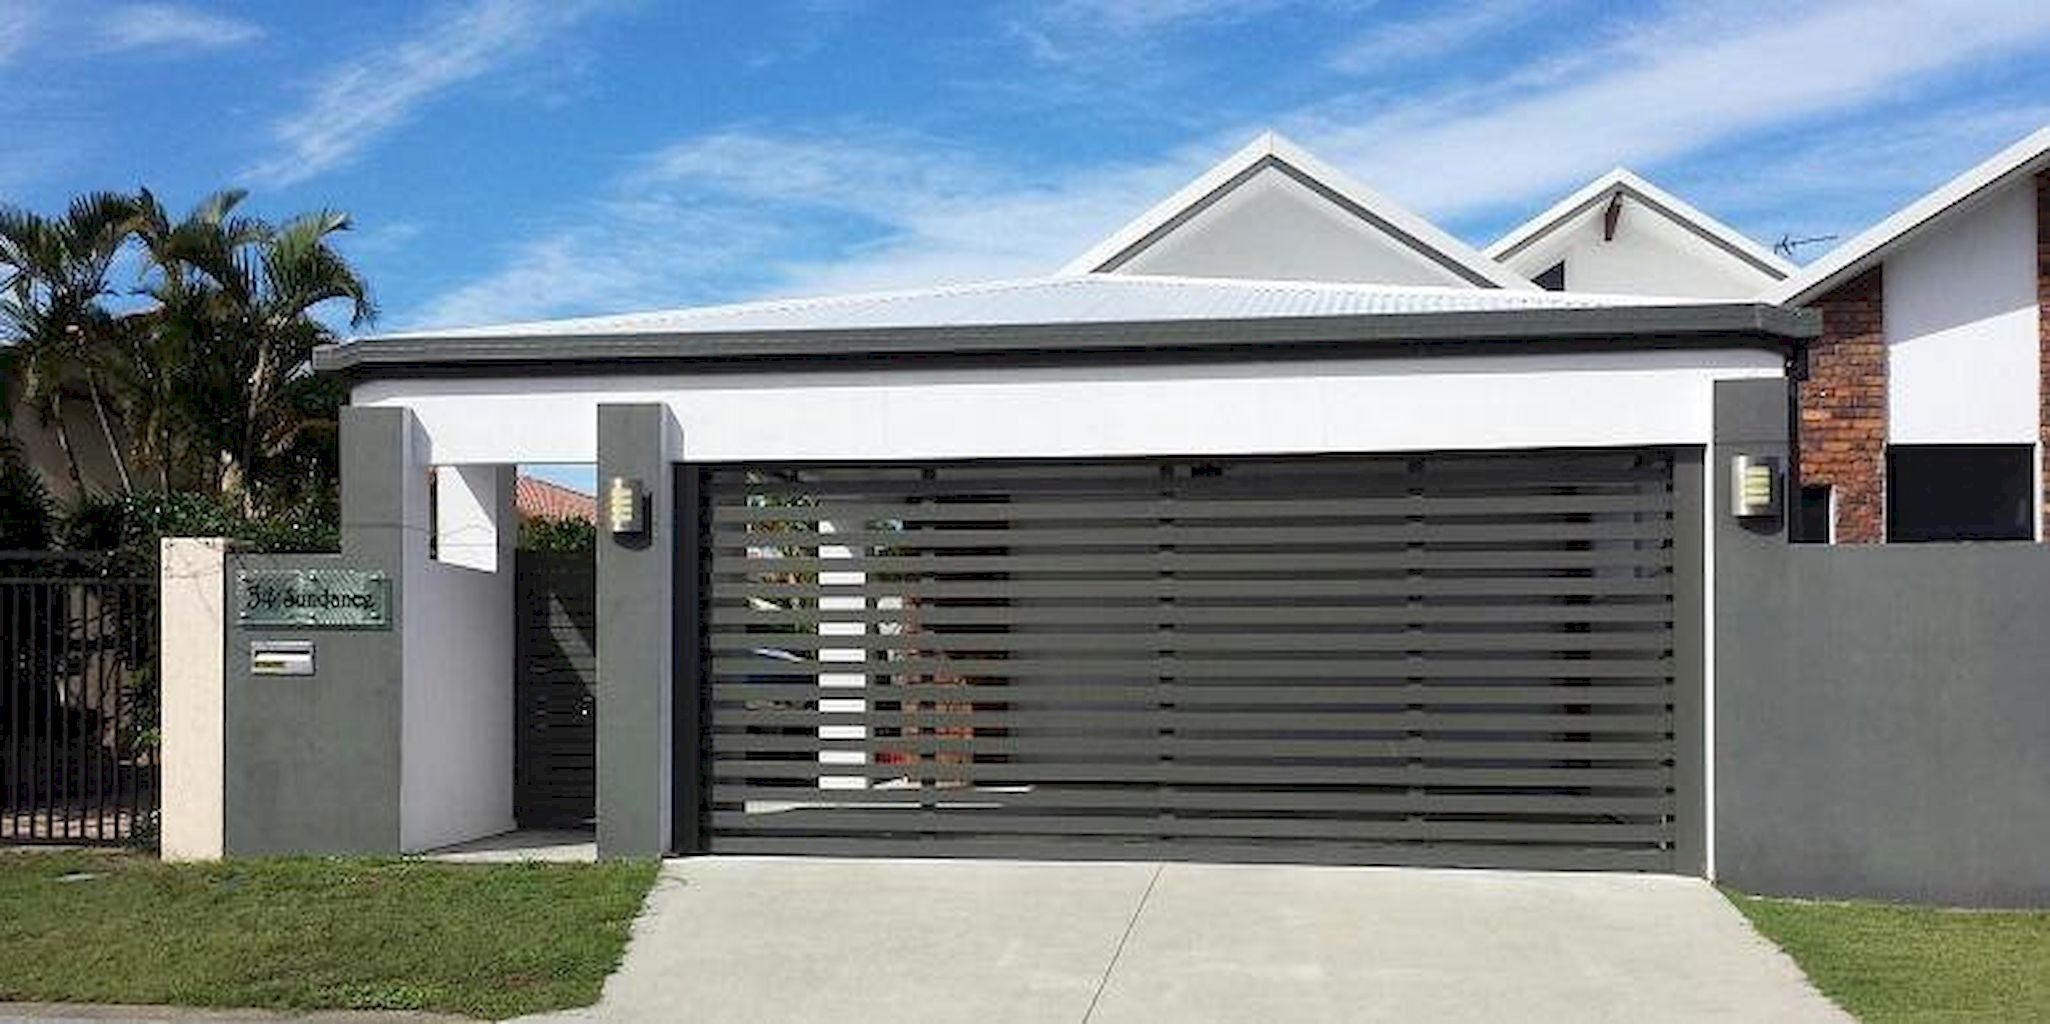 50 Best Outdoor Garage Design Ideas And Remodeling Modern Carport Carport Designs Garage Design